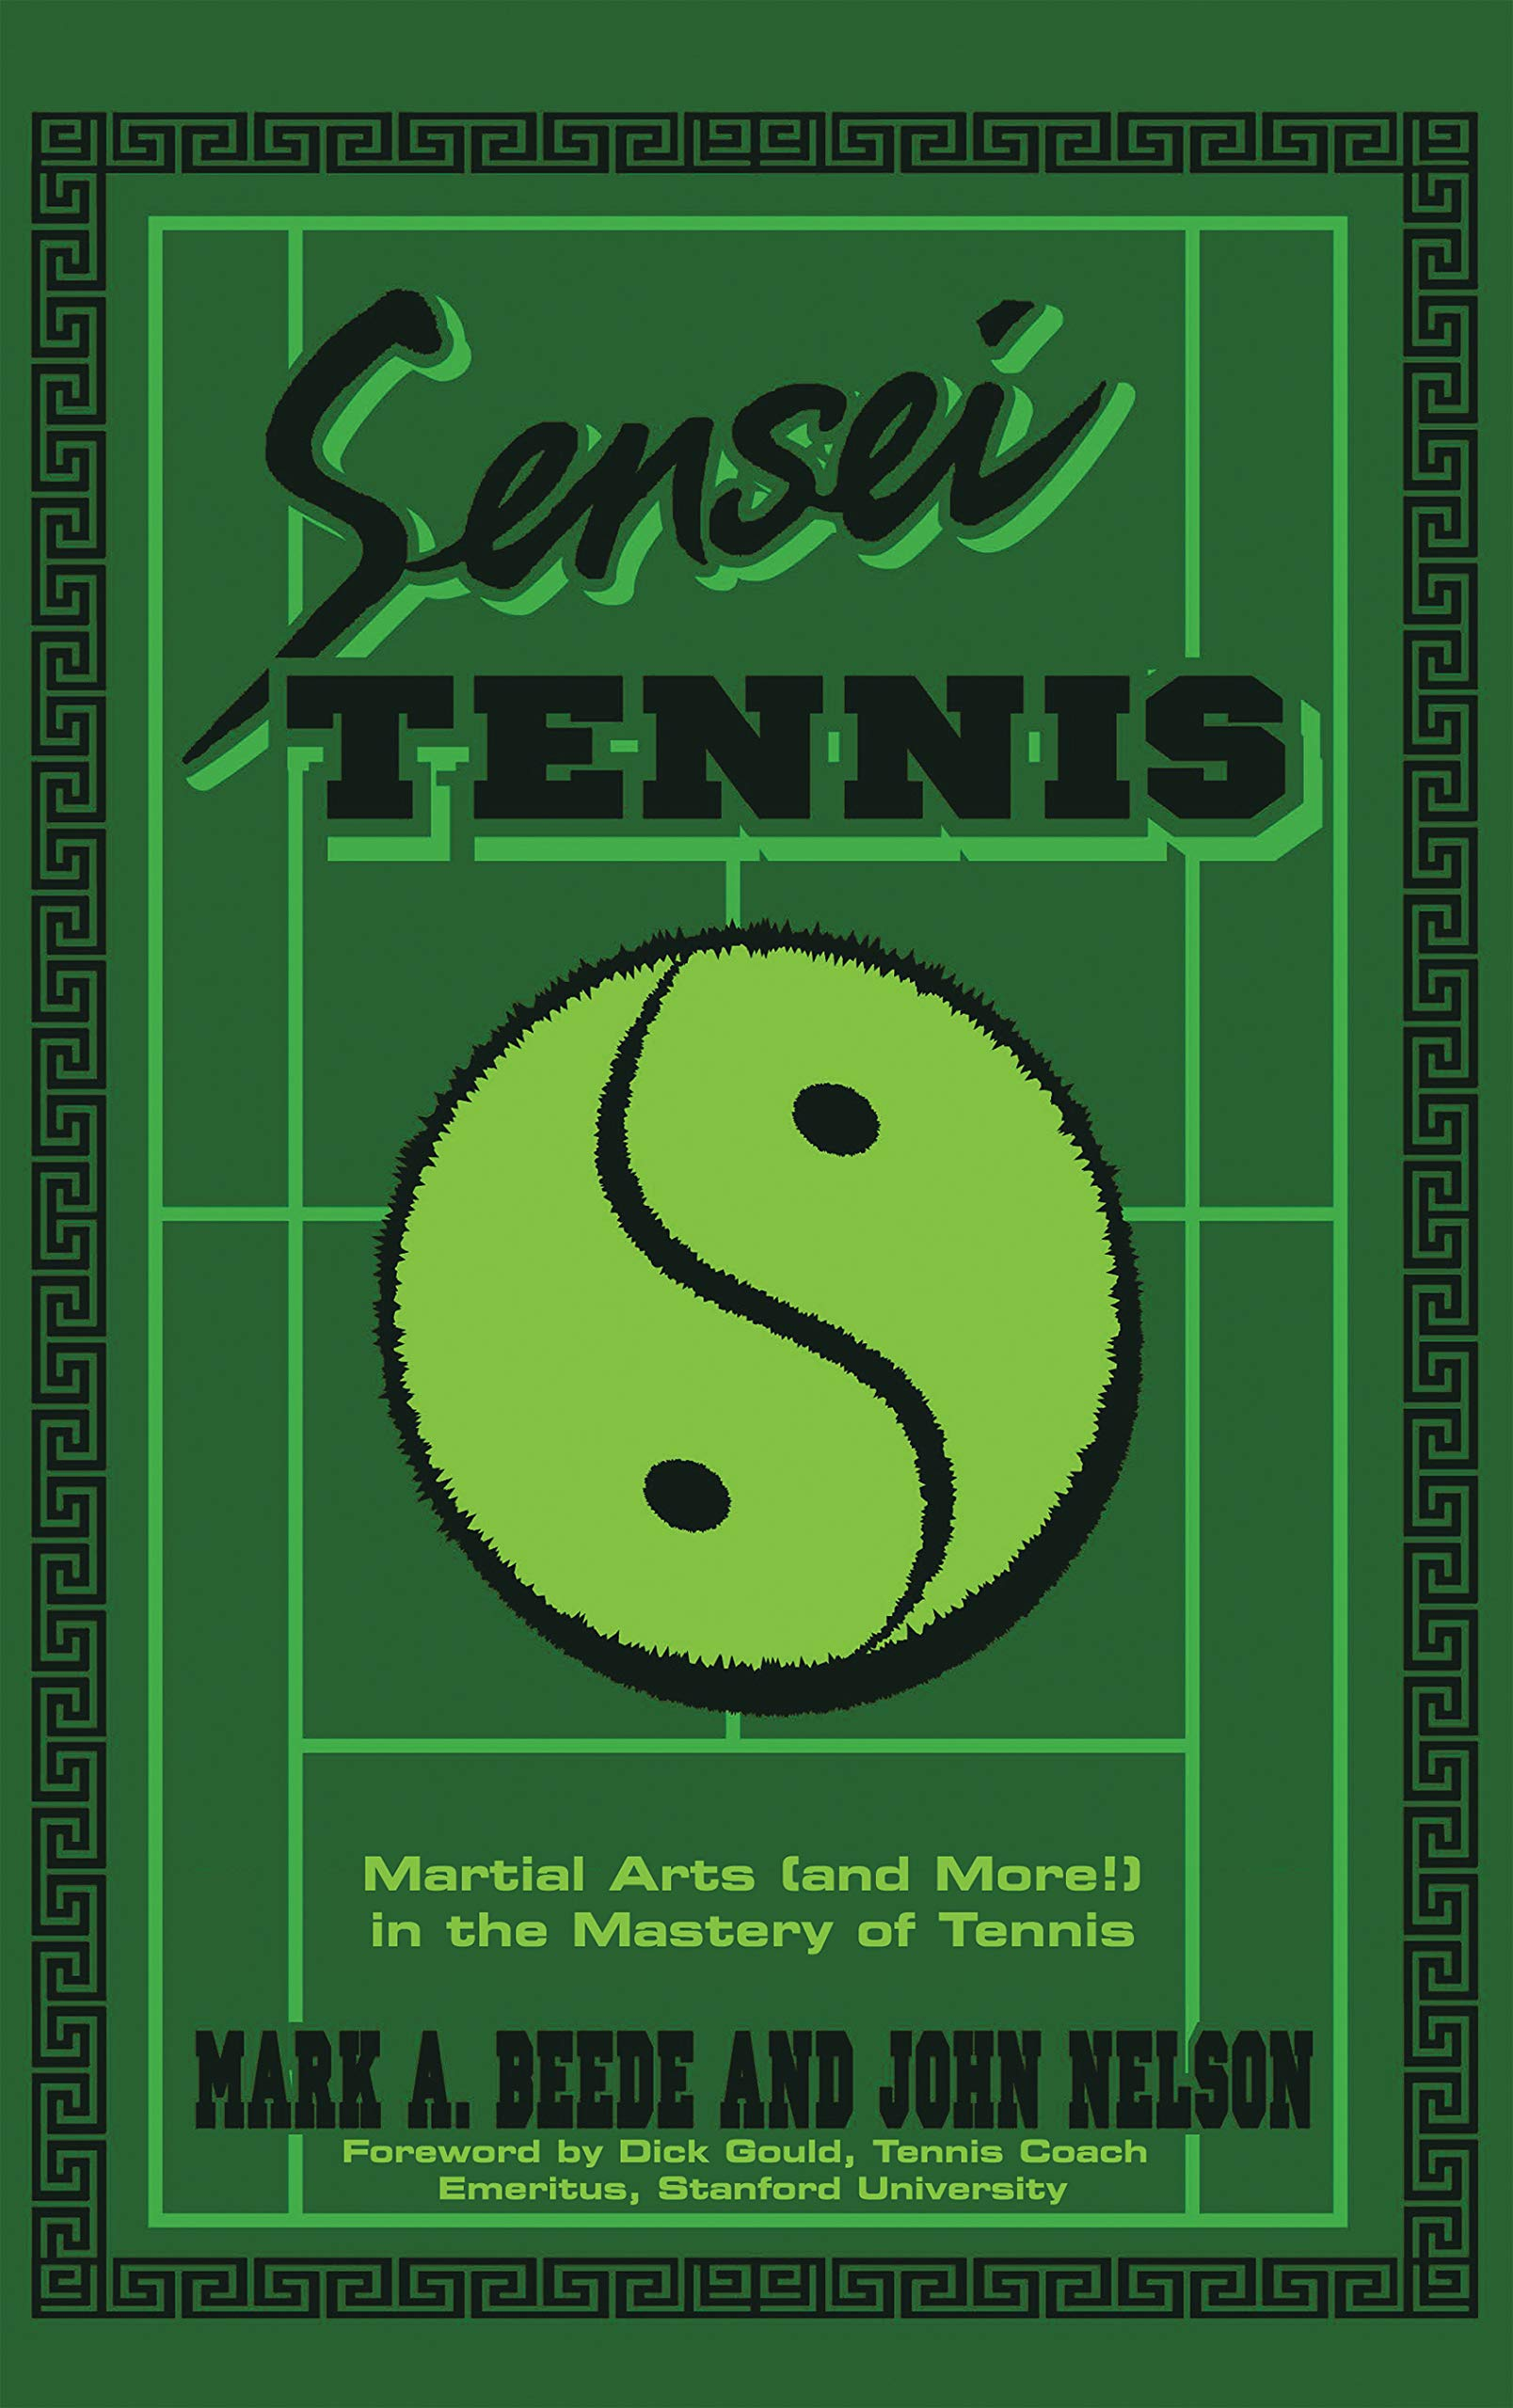 Image OfSensei Tennis: Martial Arts (And More!) In The Mastery Of Tennis